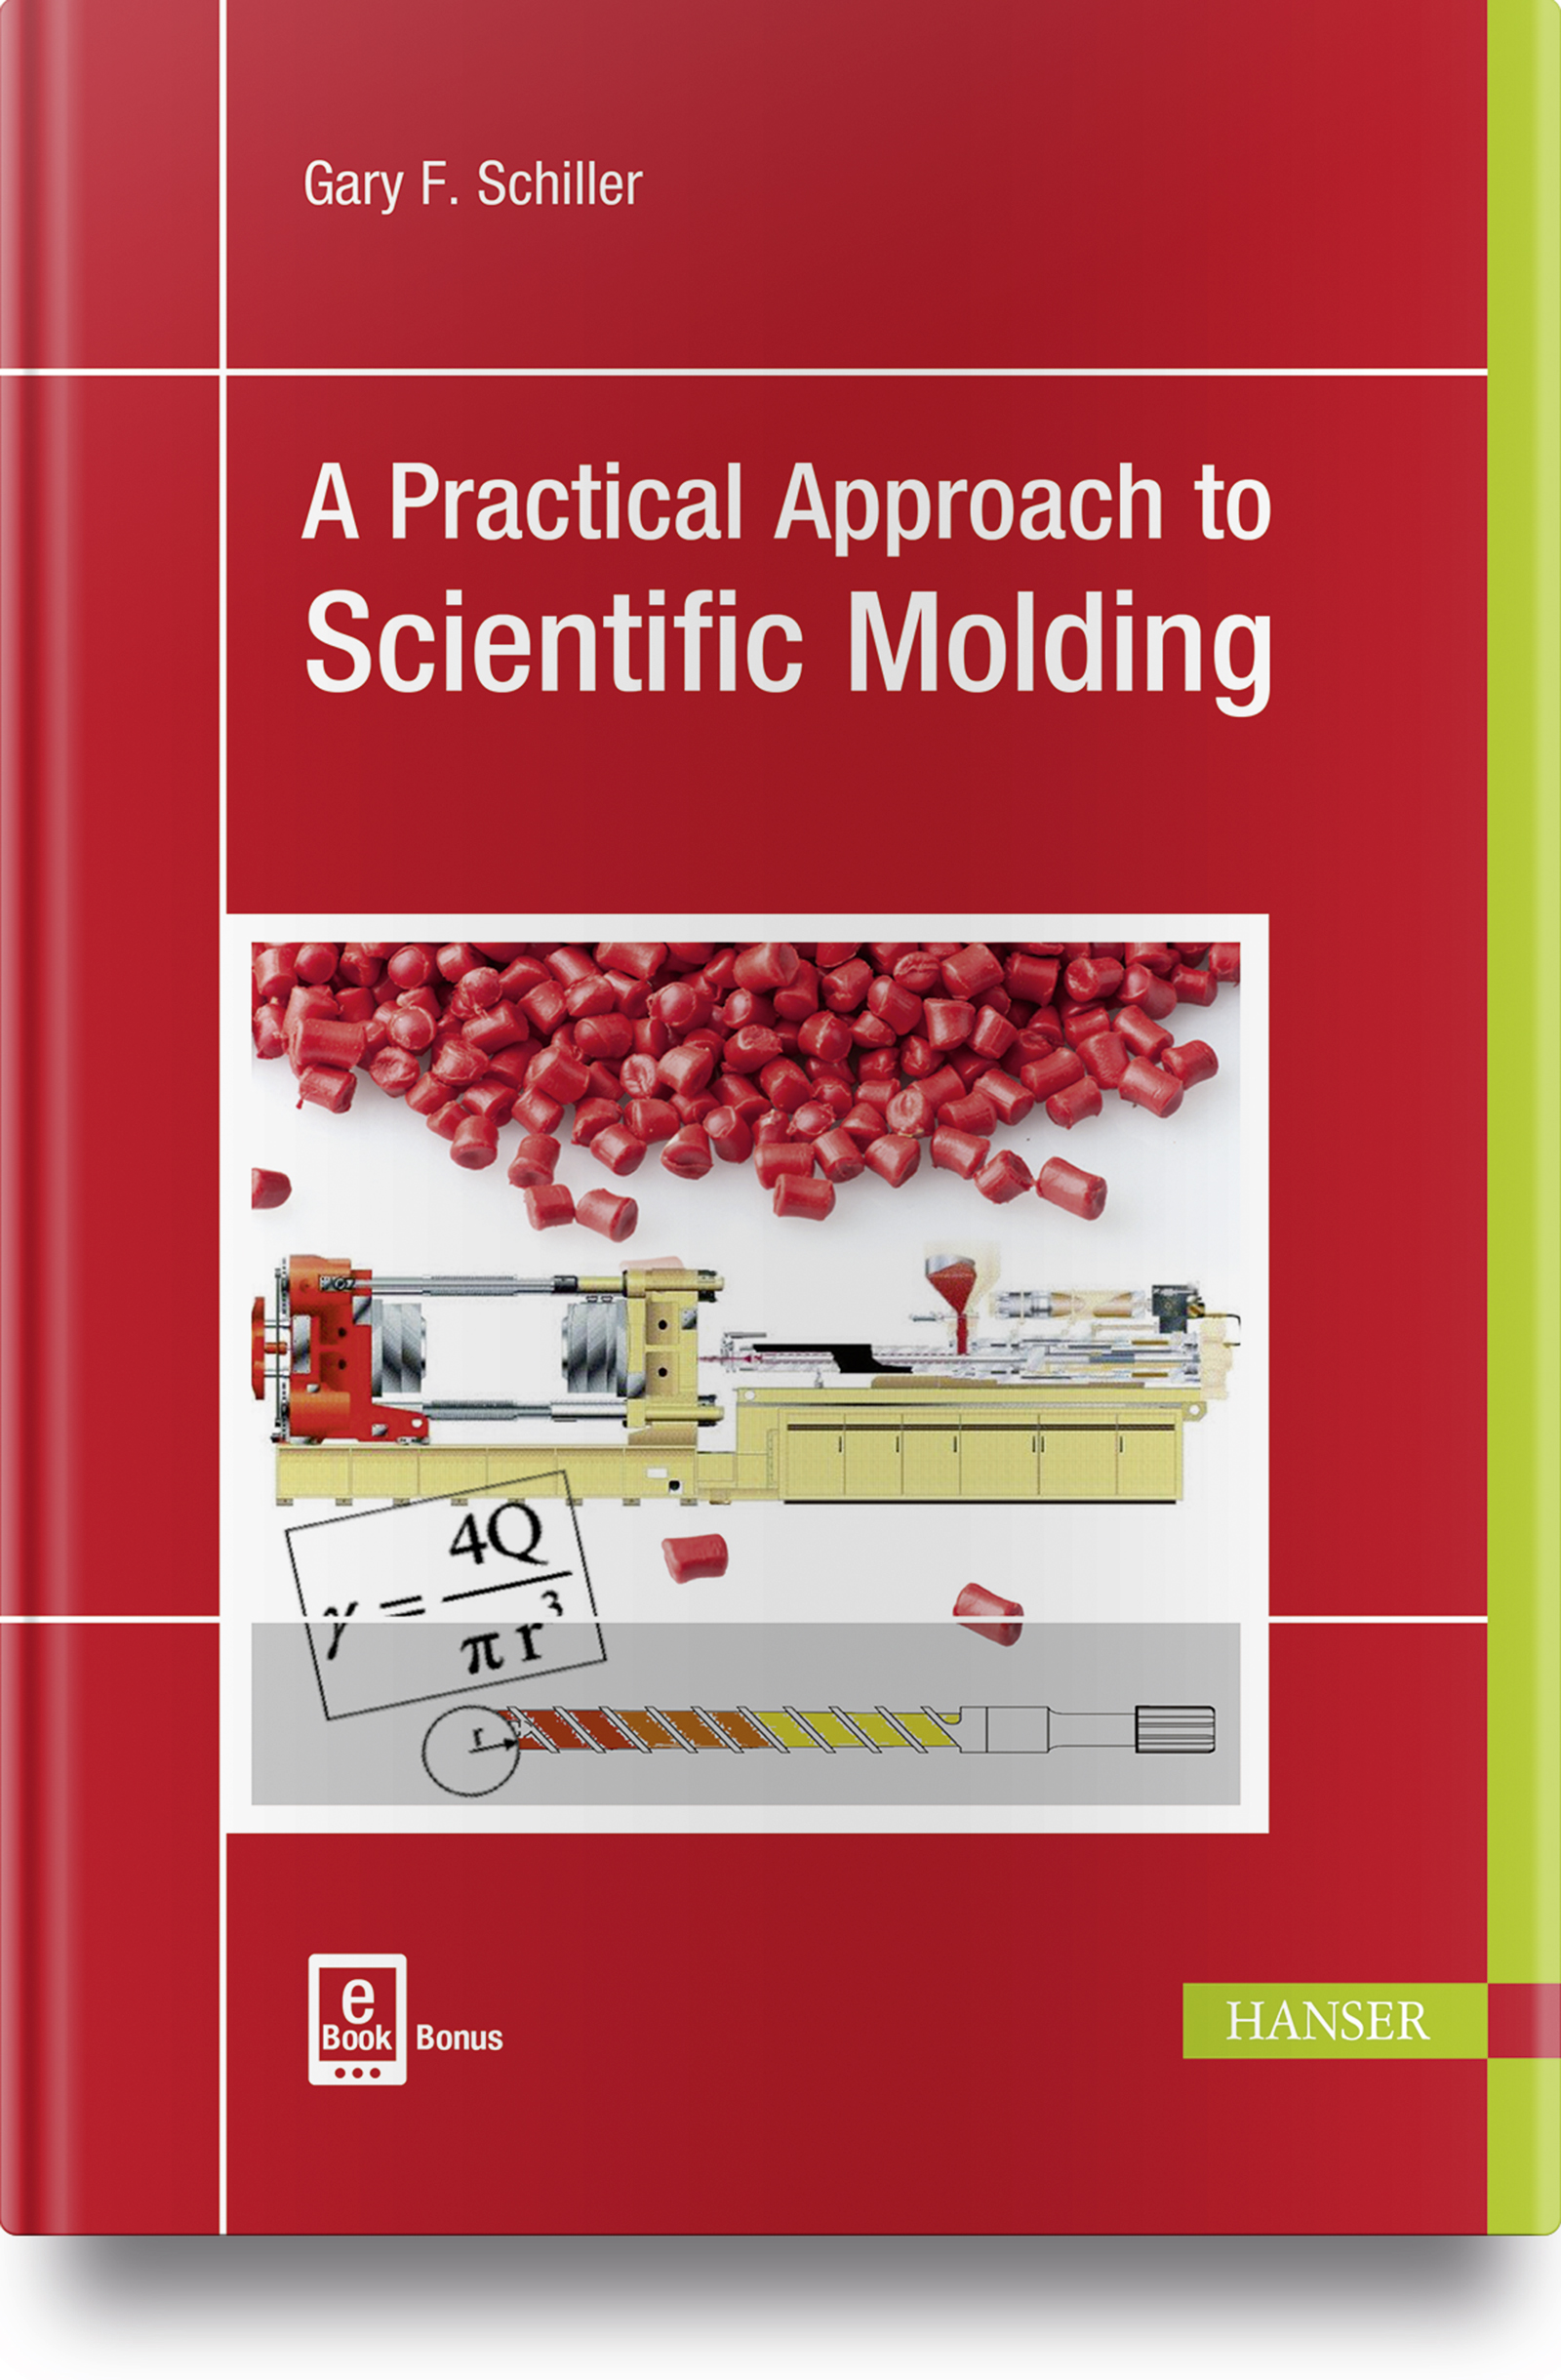 Schiller, A Practical Approach to Scientific Molding, 978-1-56990-686-6